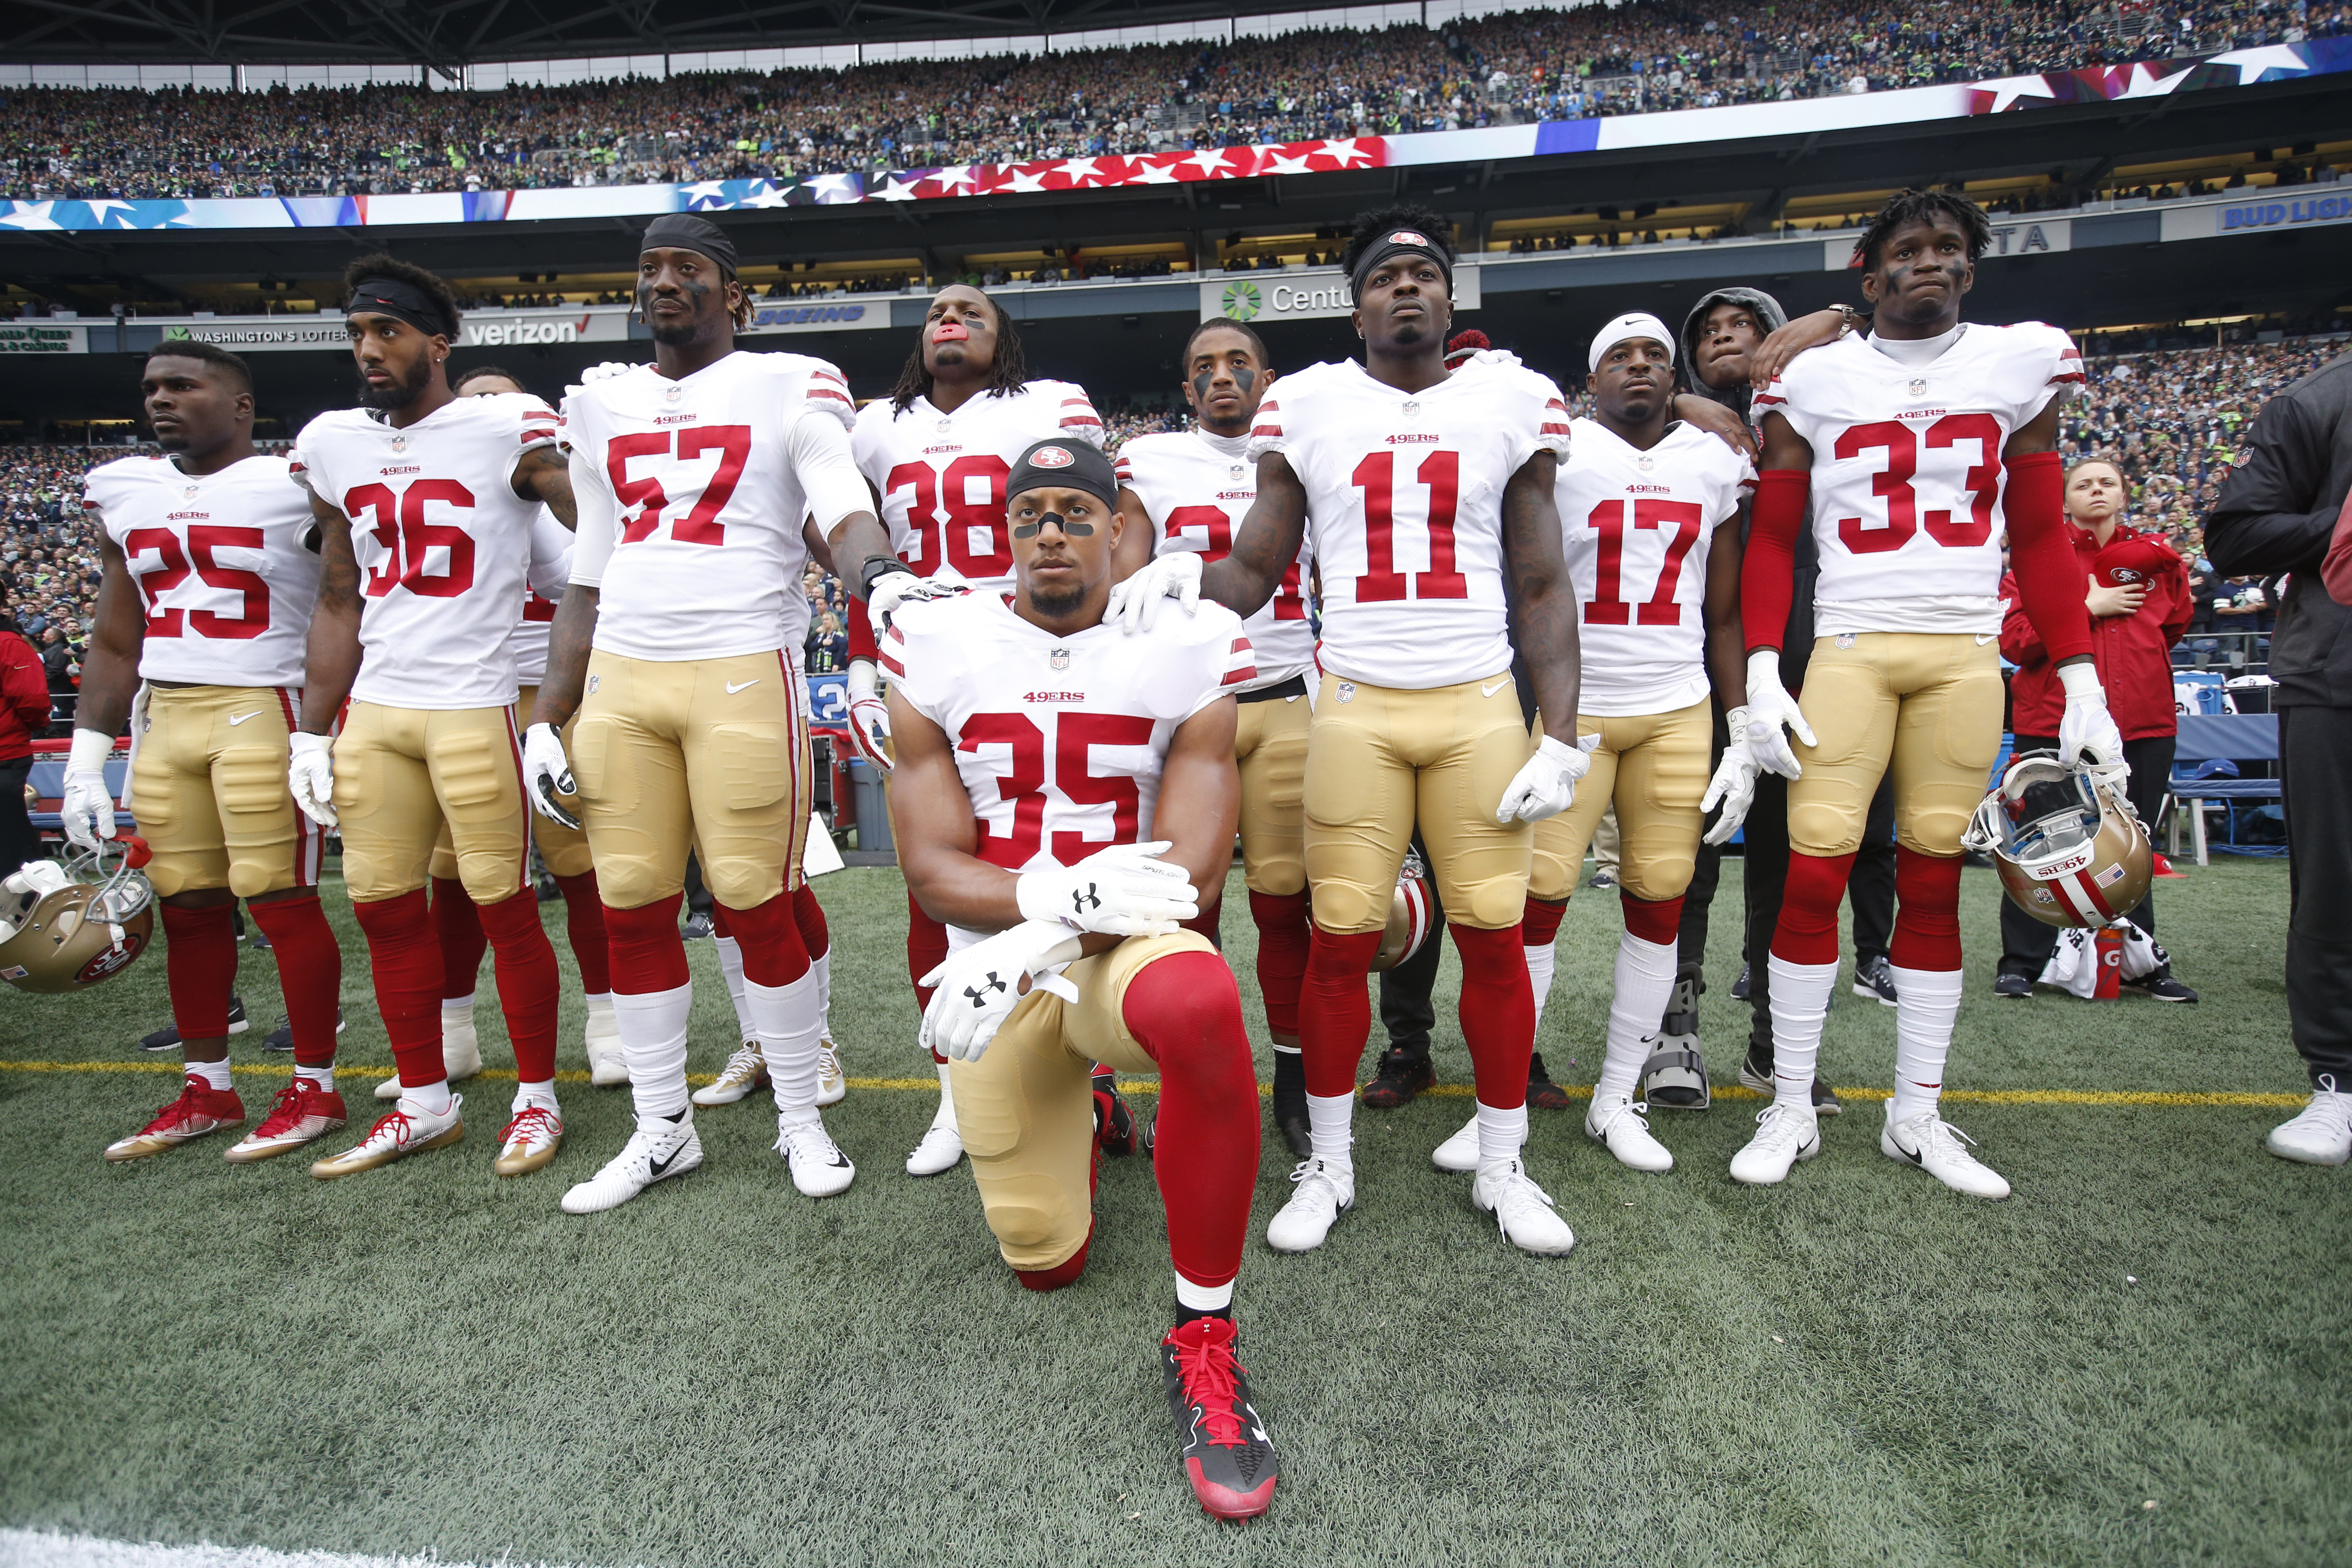 Eric Reid #35 of the San Francisco 49ers kneels during the anthem with the support of teammates prior to the game against the Seattle Seahawks at CenturyLink Field on September 17, 2017 in Seattle, Washington.